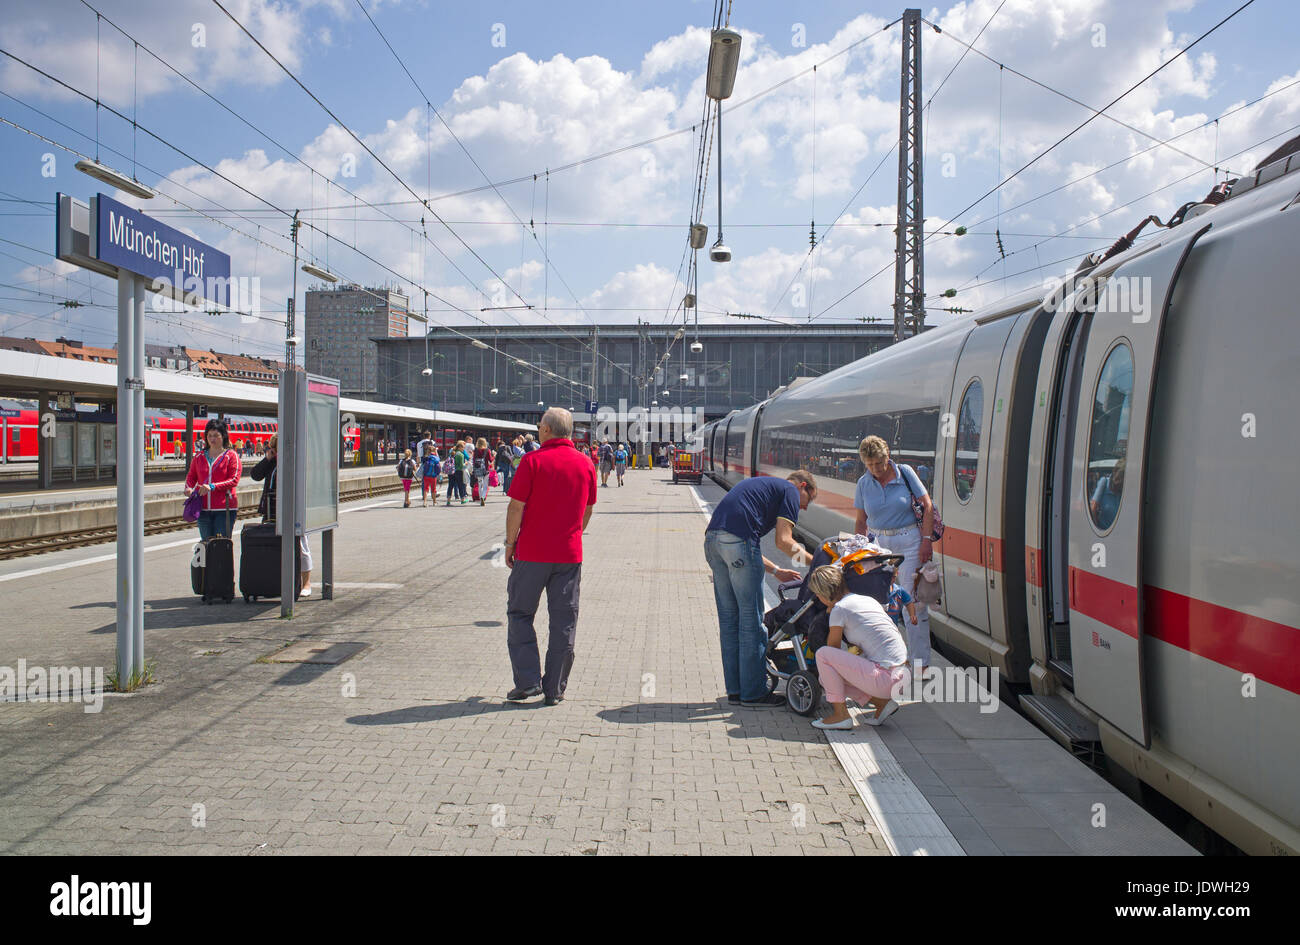 Passengers on platform after alighting from train, Munich main railway station, Germany - Stock Image